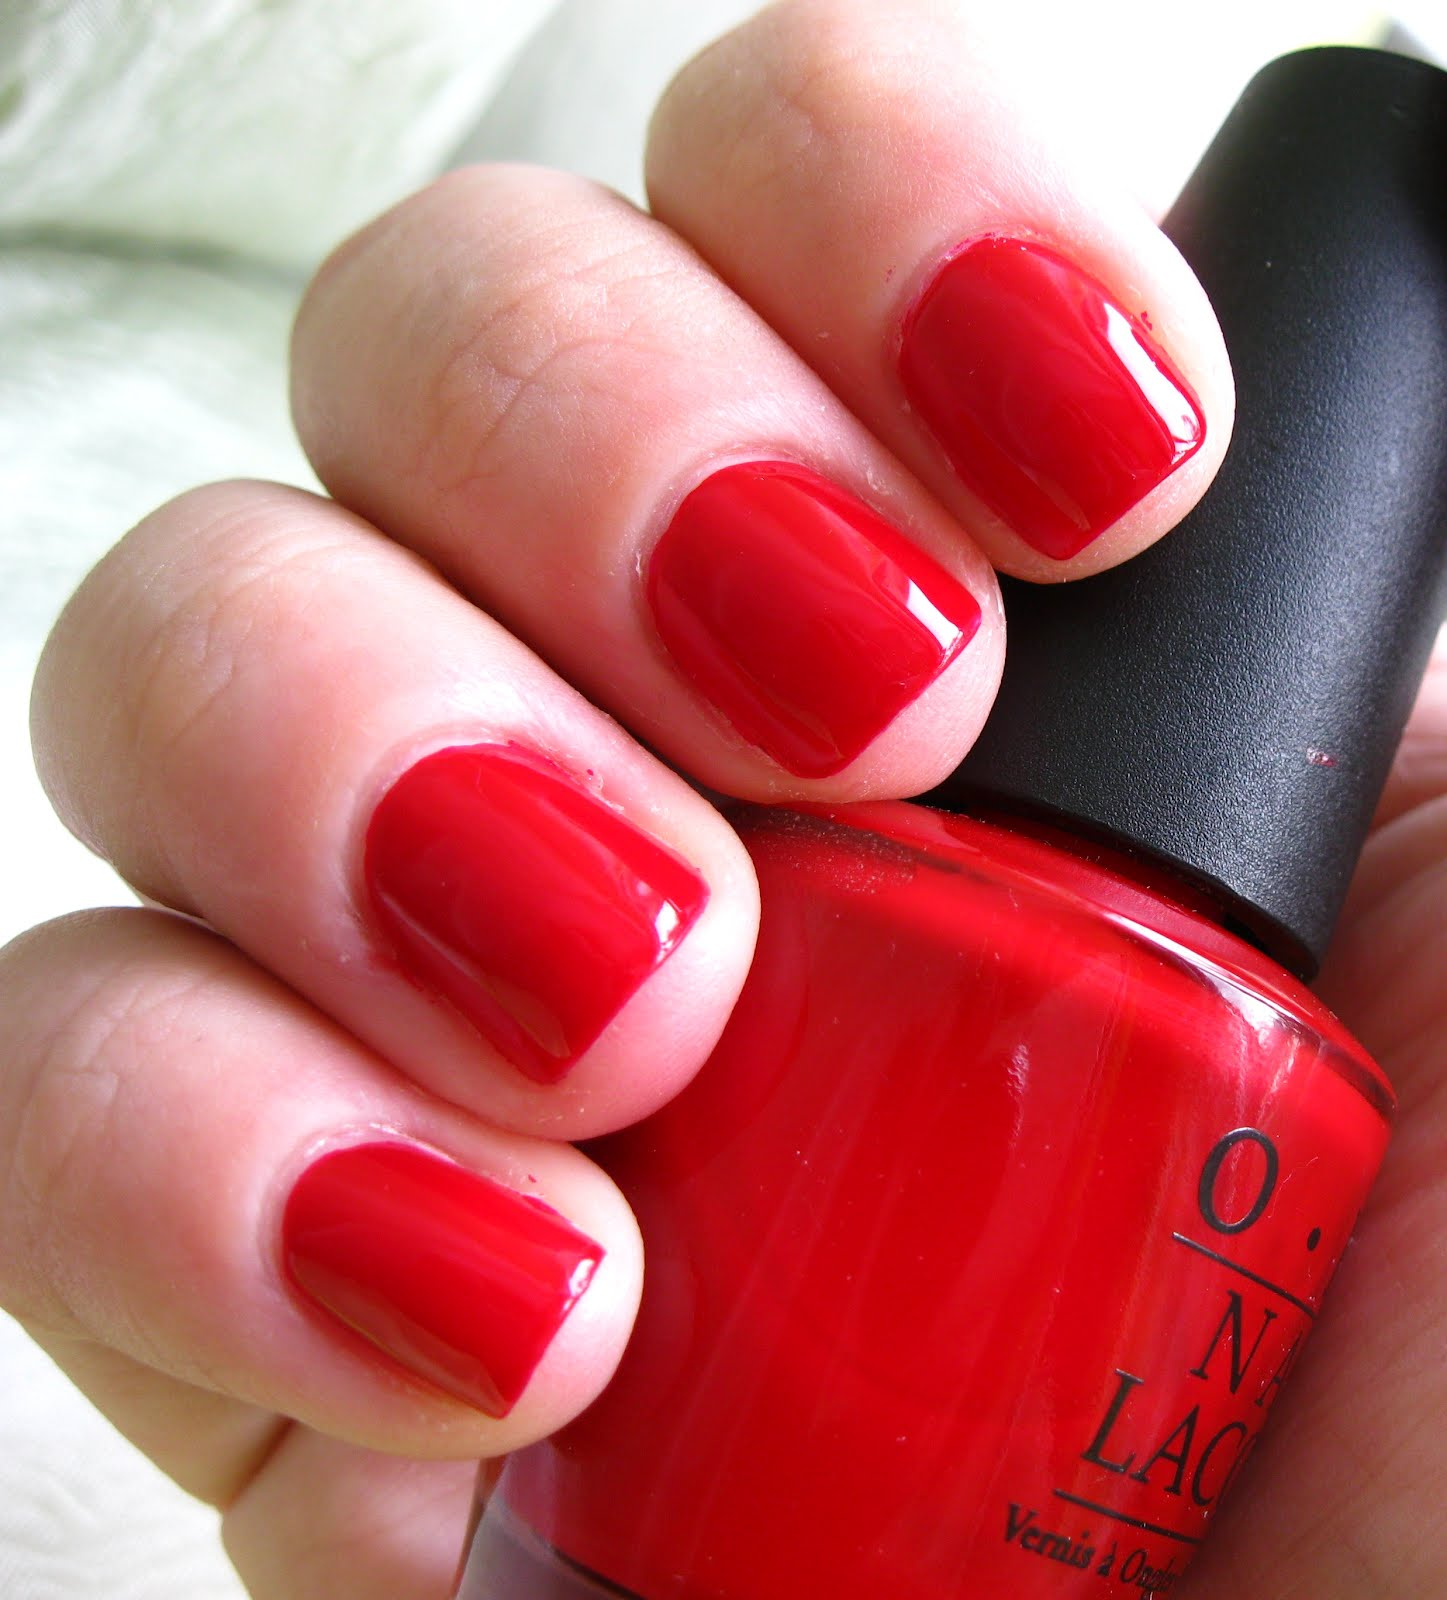 While there are number of colors to chose from as far as nail paints are concerned, ask any woman what is the best color for her nails or the one that she longs to have the most and she will tell you it is red.